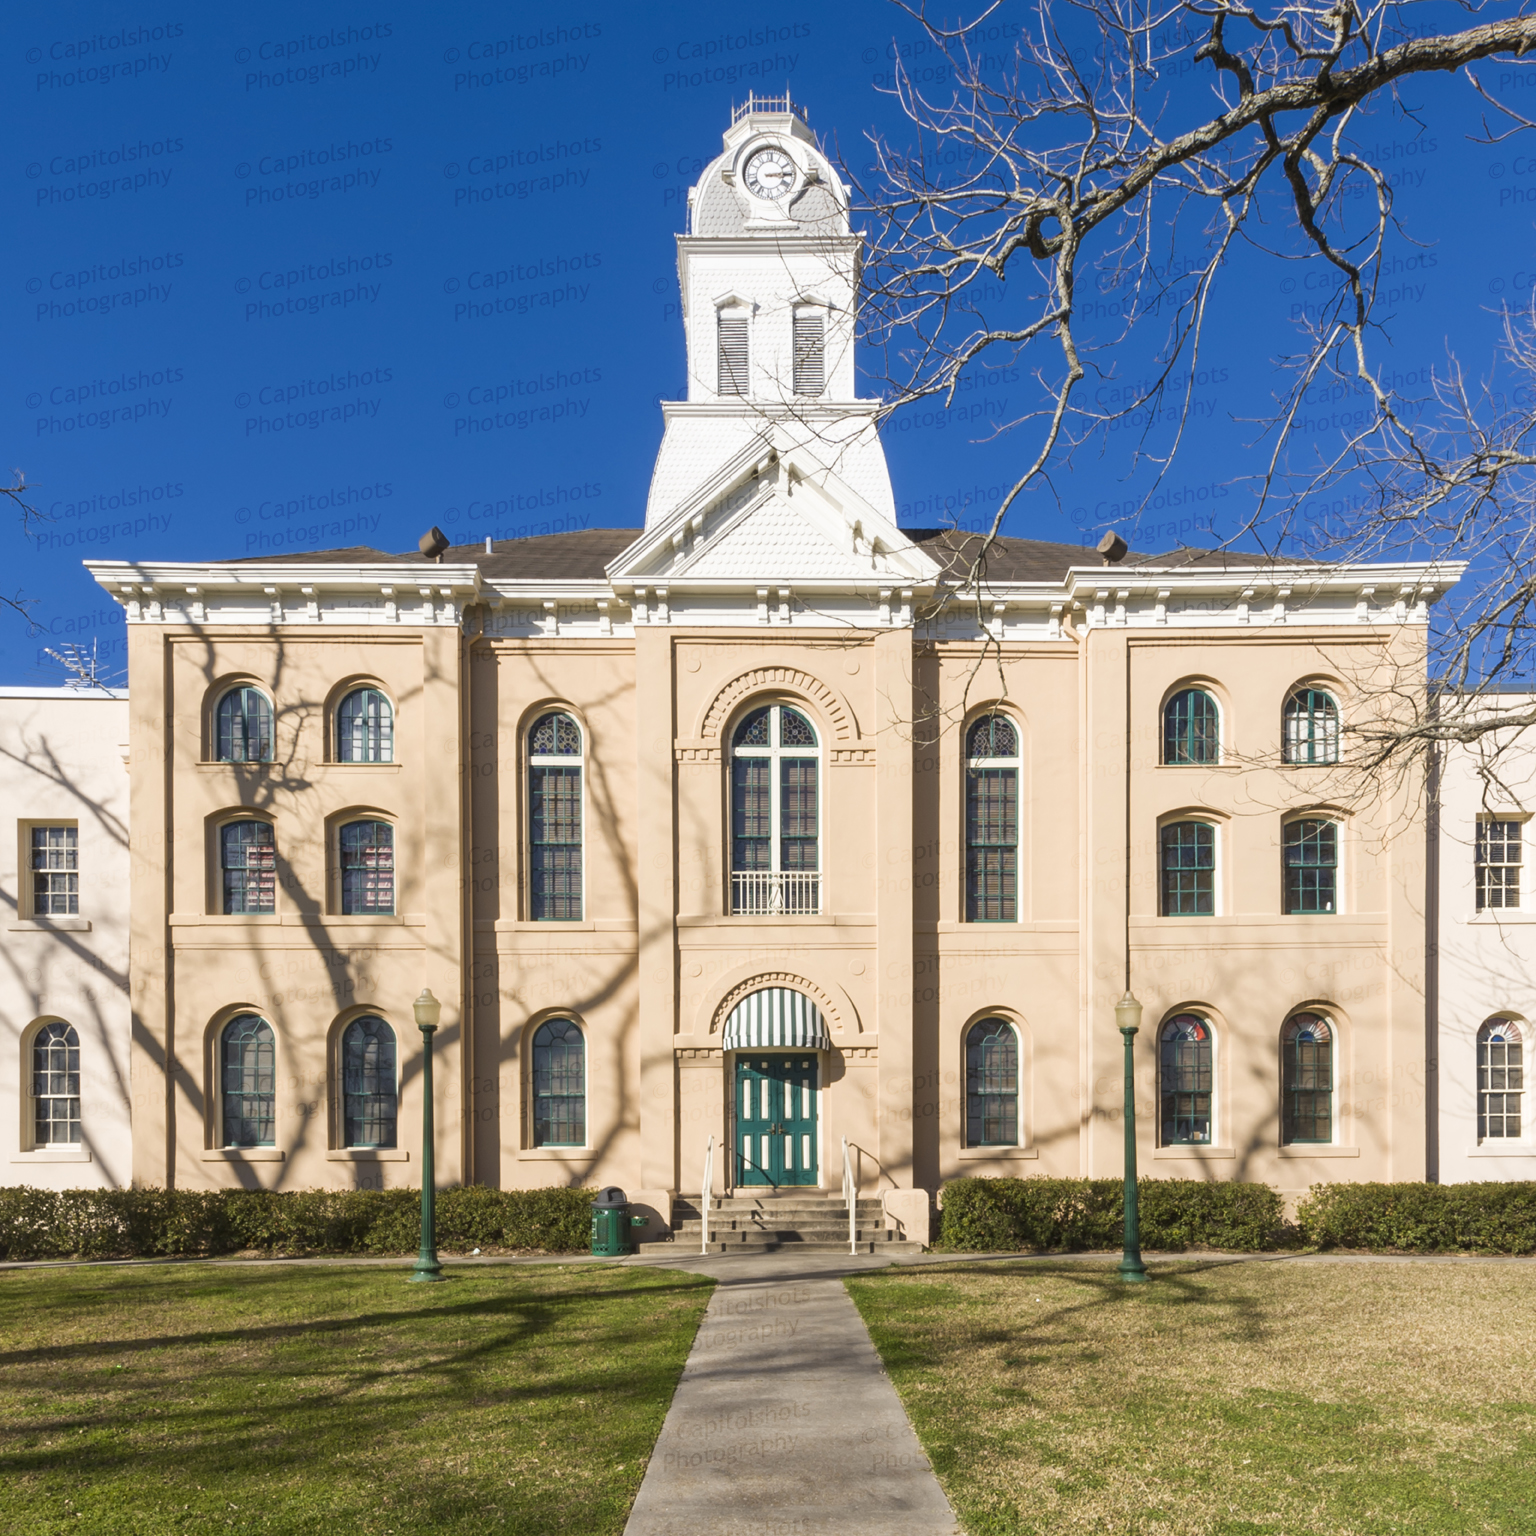 Jasper County Courts Building